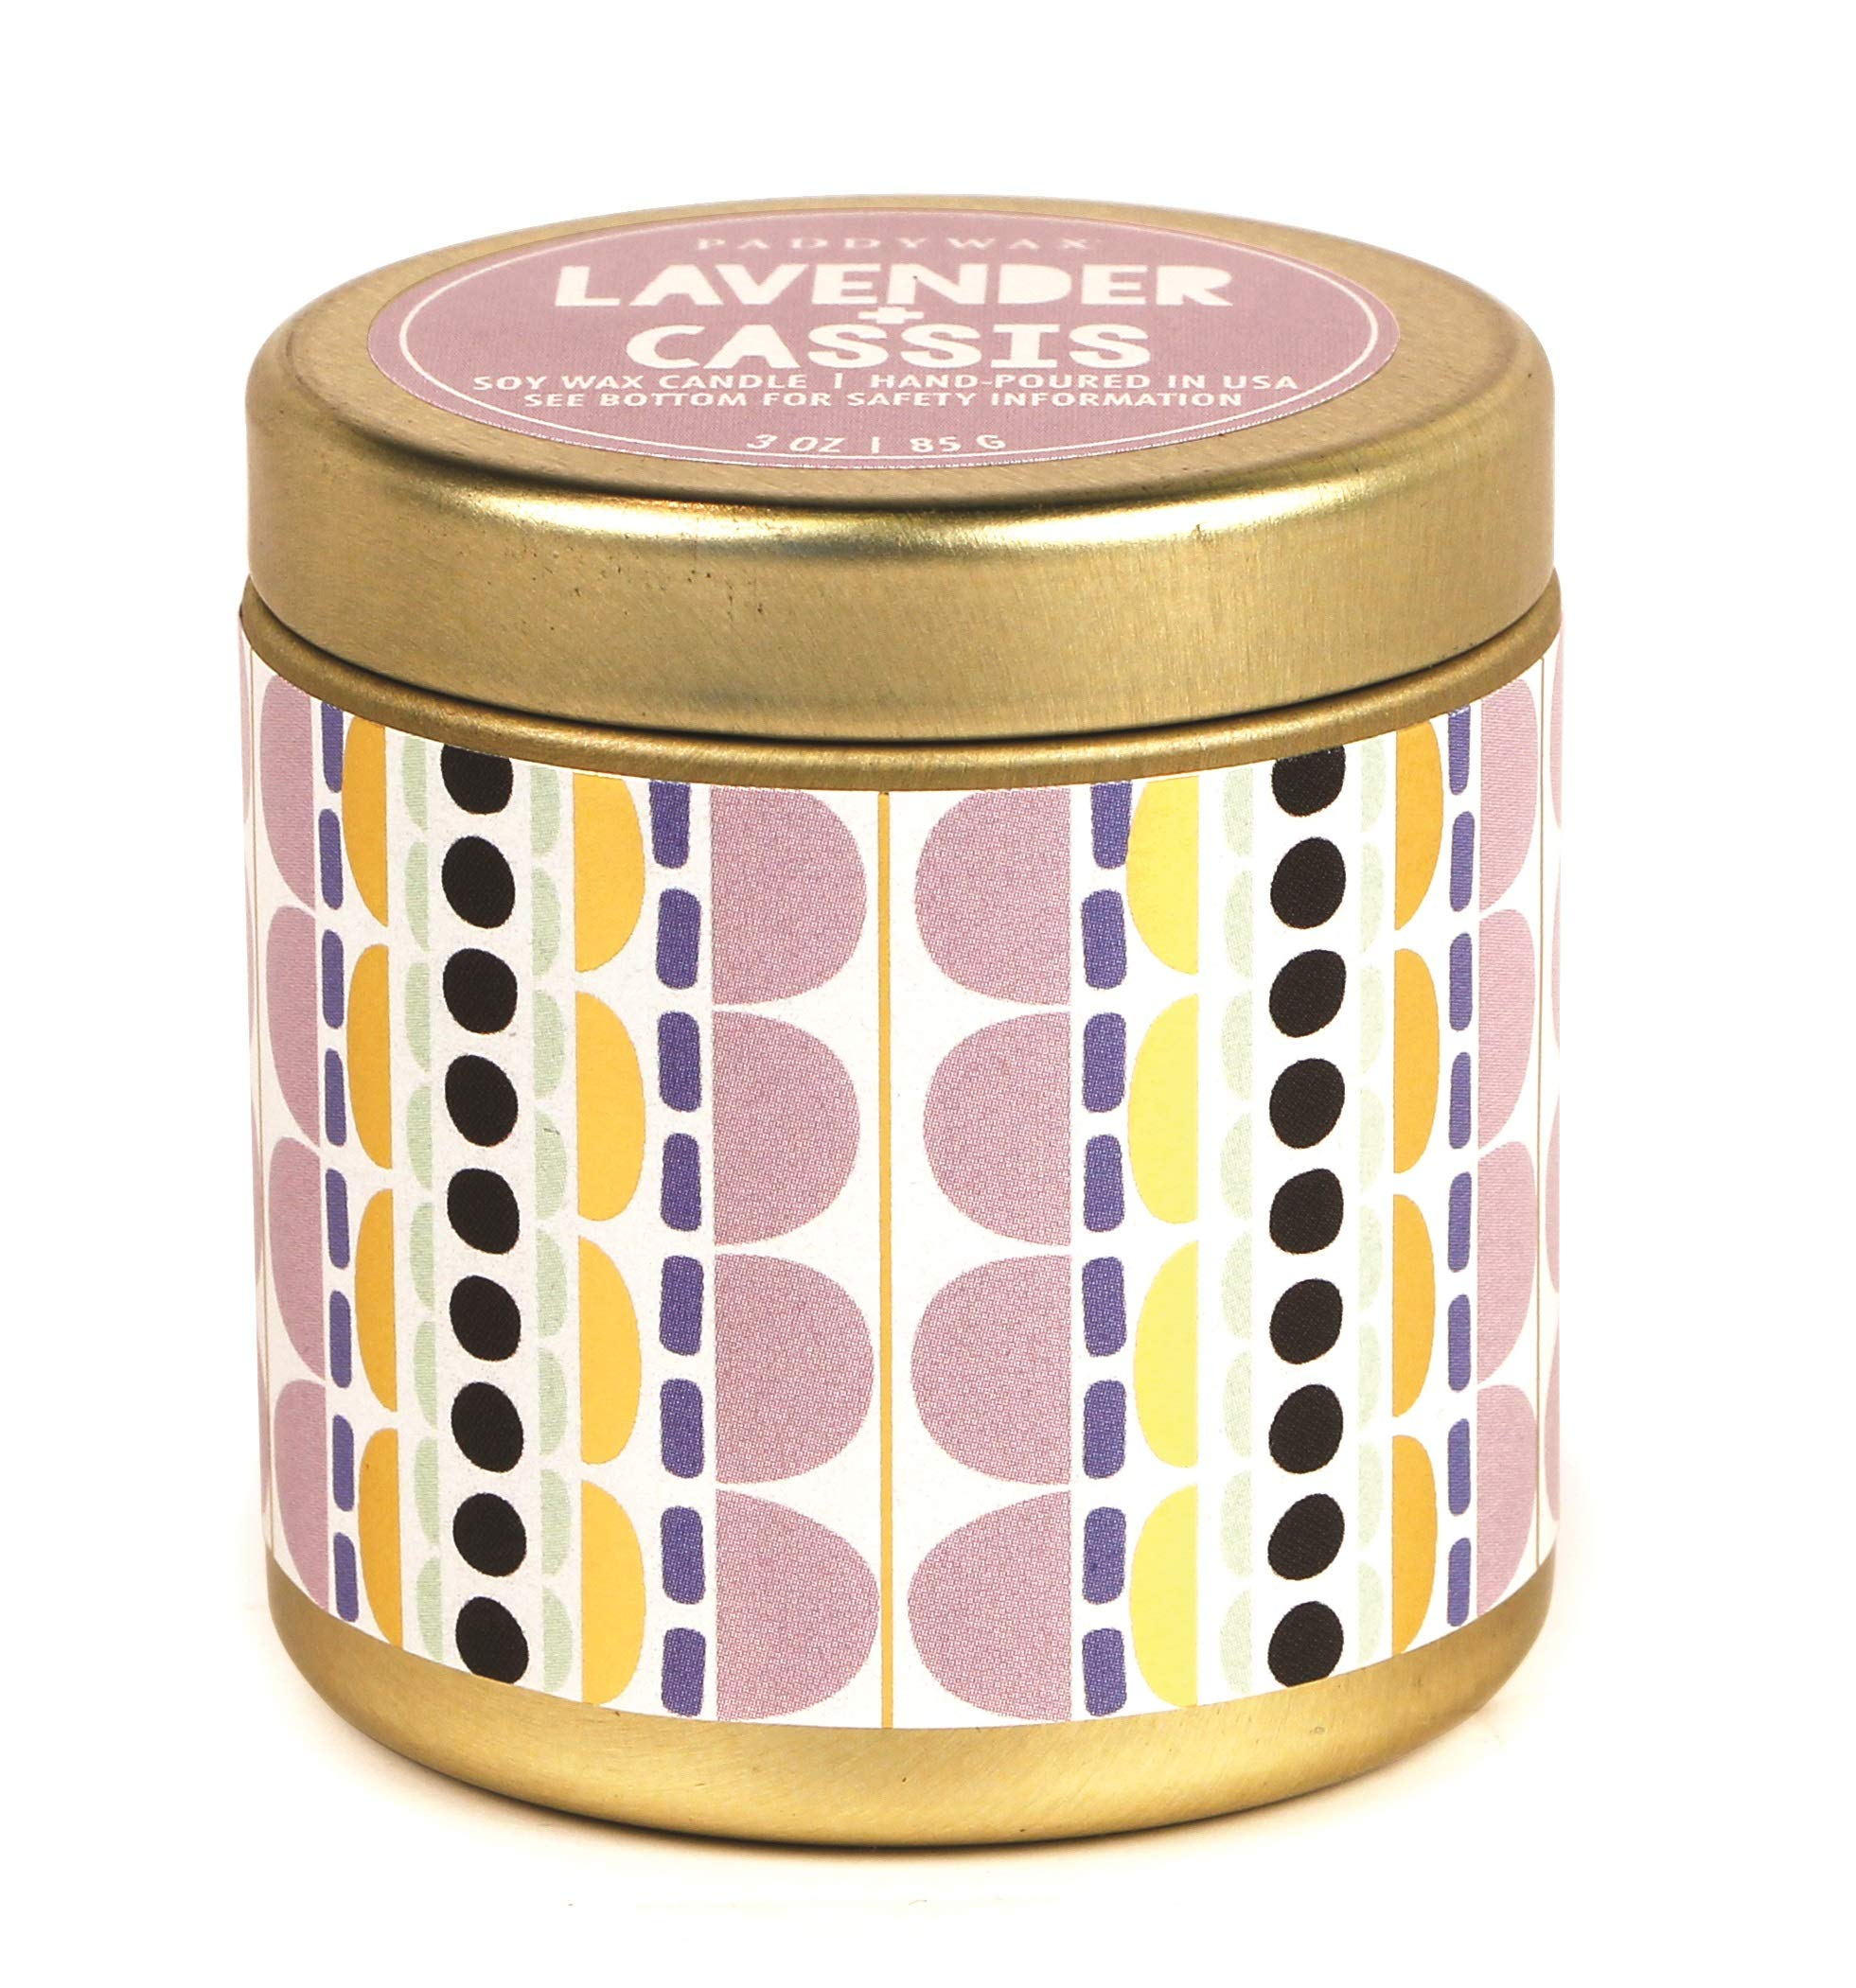 Paddywax Candles Kaleidoscope Collection Travel Tin Candle, 1 EA, Lavender Cassis